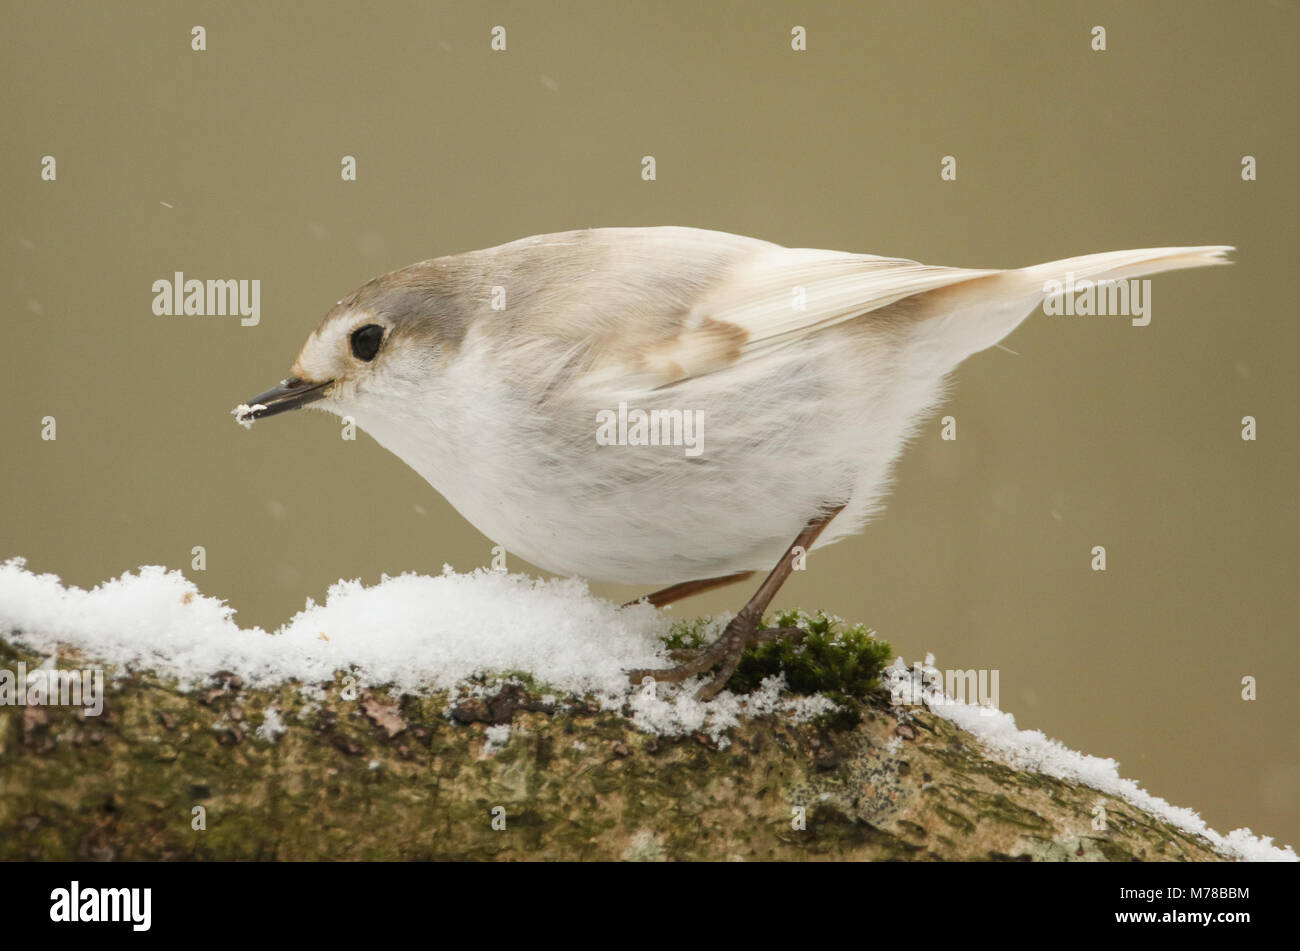 A rare feeding Leucistic Robin (Erithacus rubecula) perched on a branch covered in snow during a snowstorm. - Stock Image